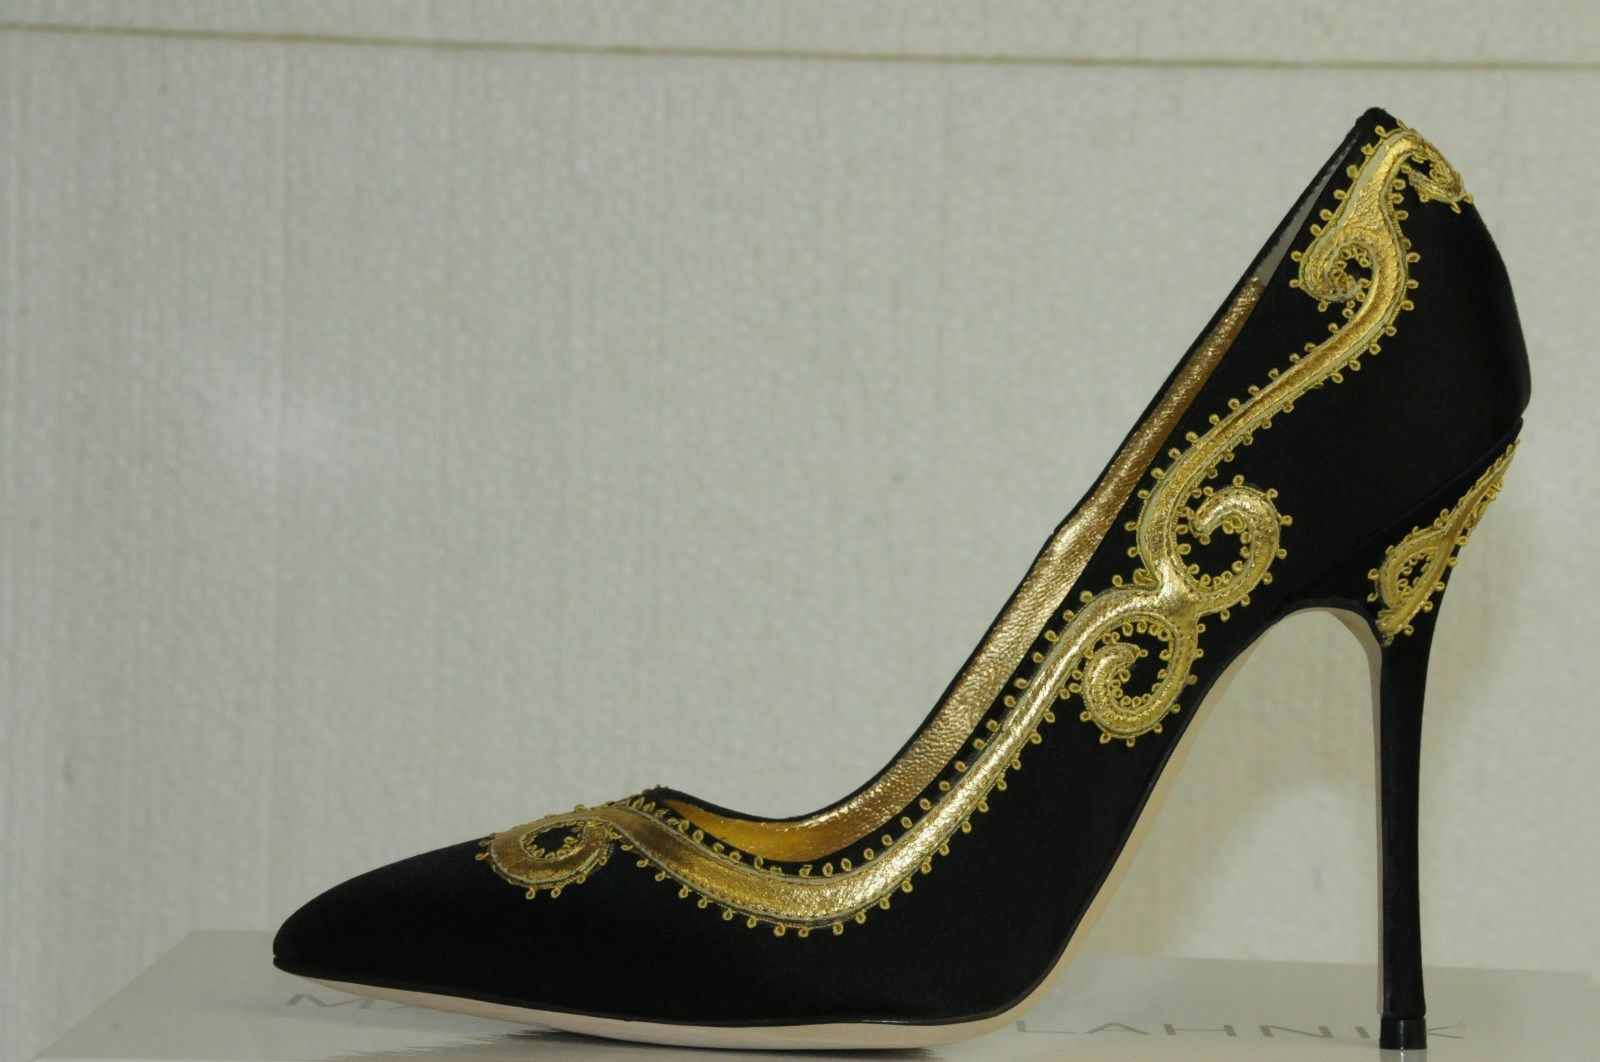 1165 New Manolo Blahnik TRASPUESTO Black Satin Satin Satin gold shoes Pumps BB Heels 39 40 f7ec3b